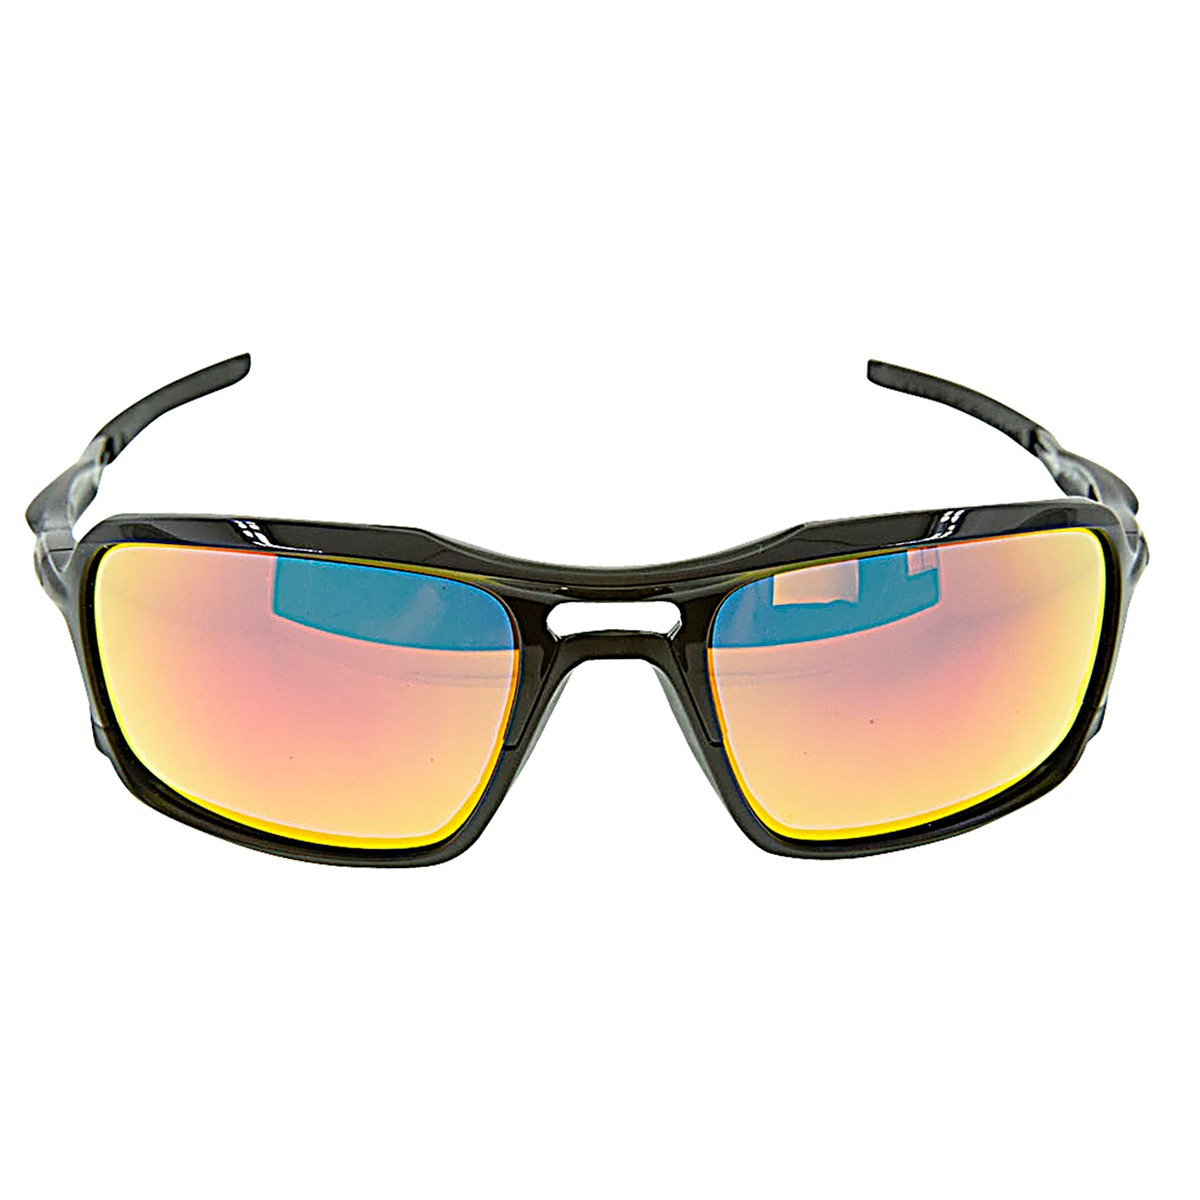 11dc8725f5 Details about New Authentic Oakley Triggerman Polished Black with Ruby  Iridium Lenses 926603